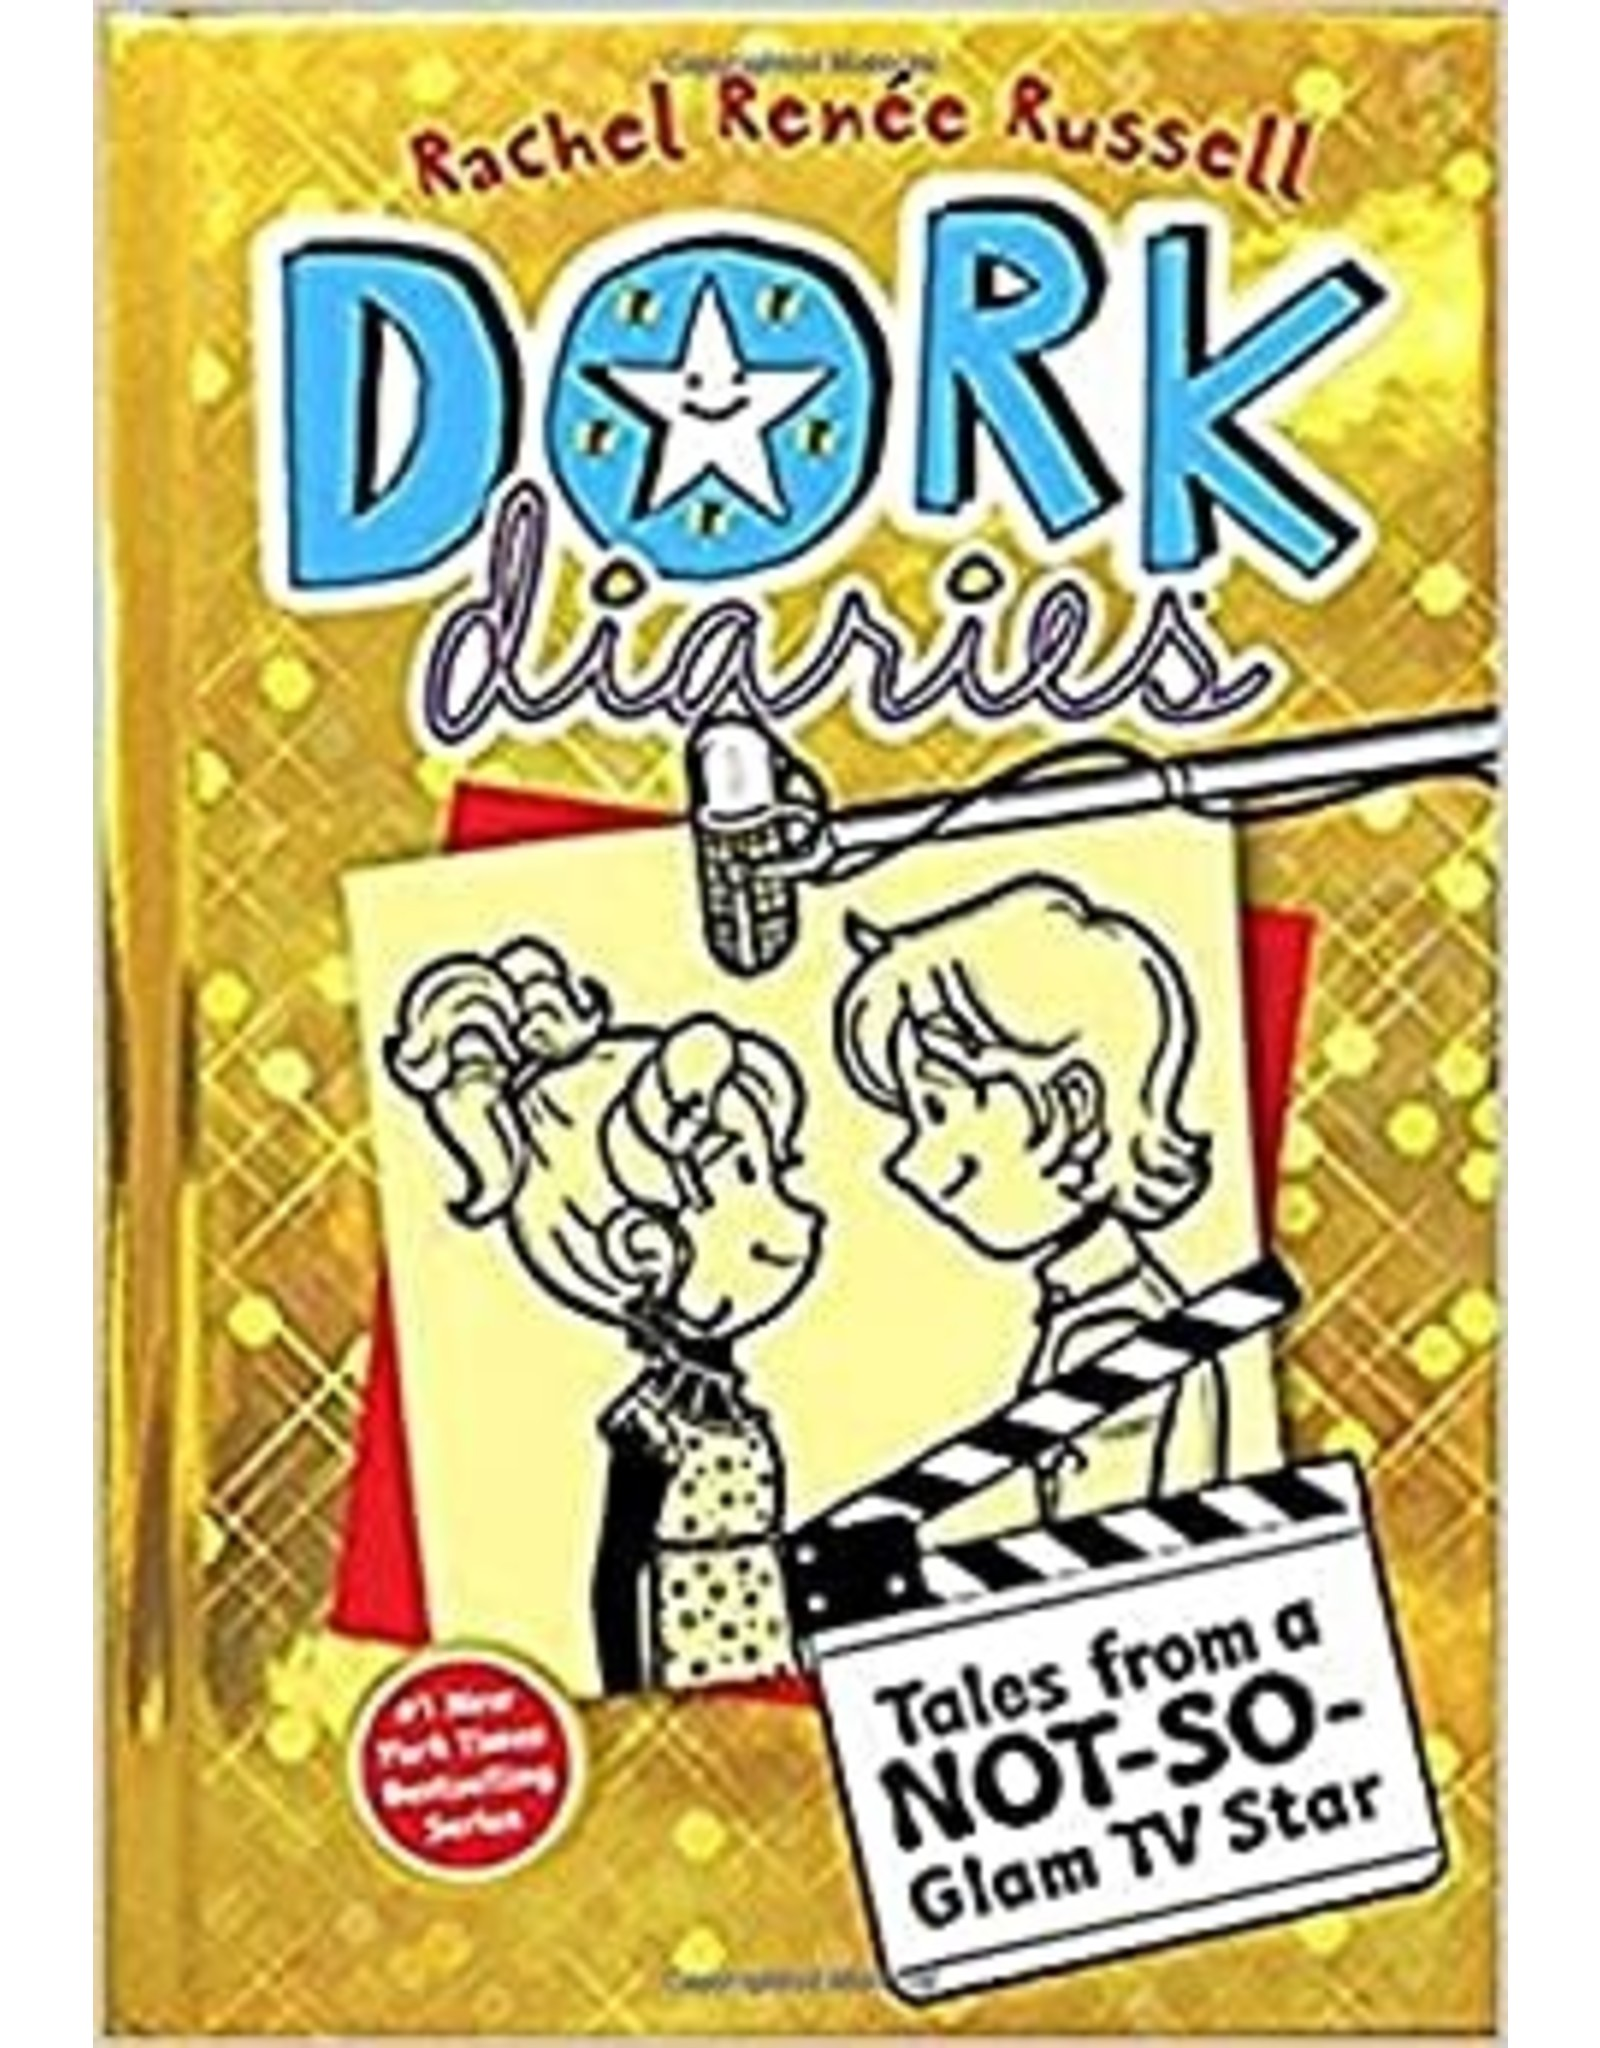 ALADDIN BOOKS DORK DIARIES HC VOL 07 TALES FROM A NOT SO GLAM TV STAR